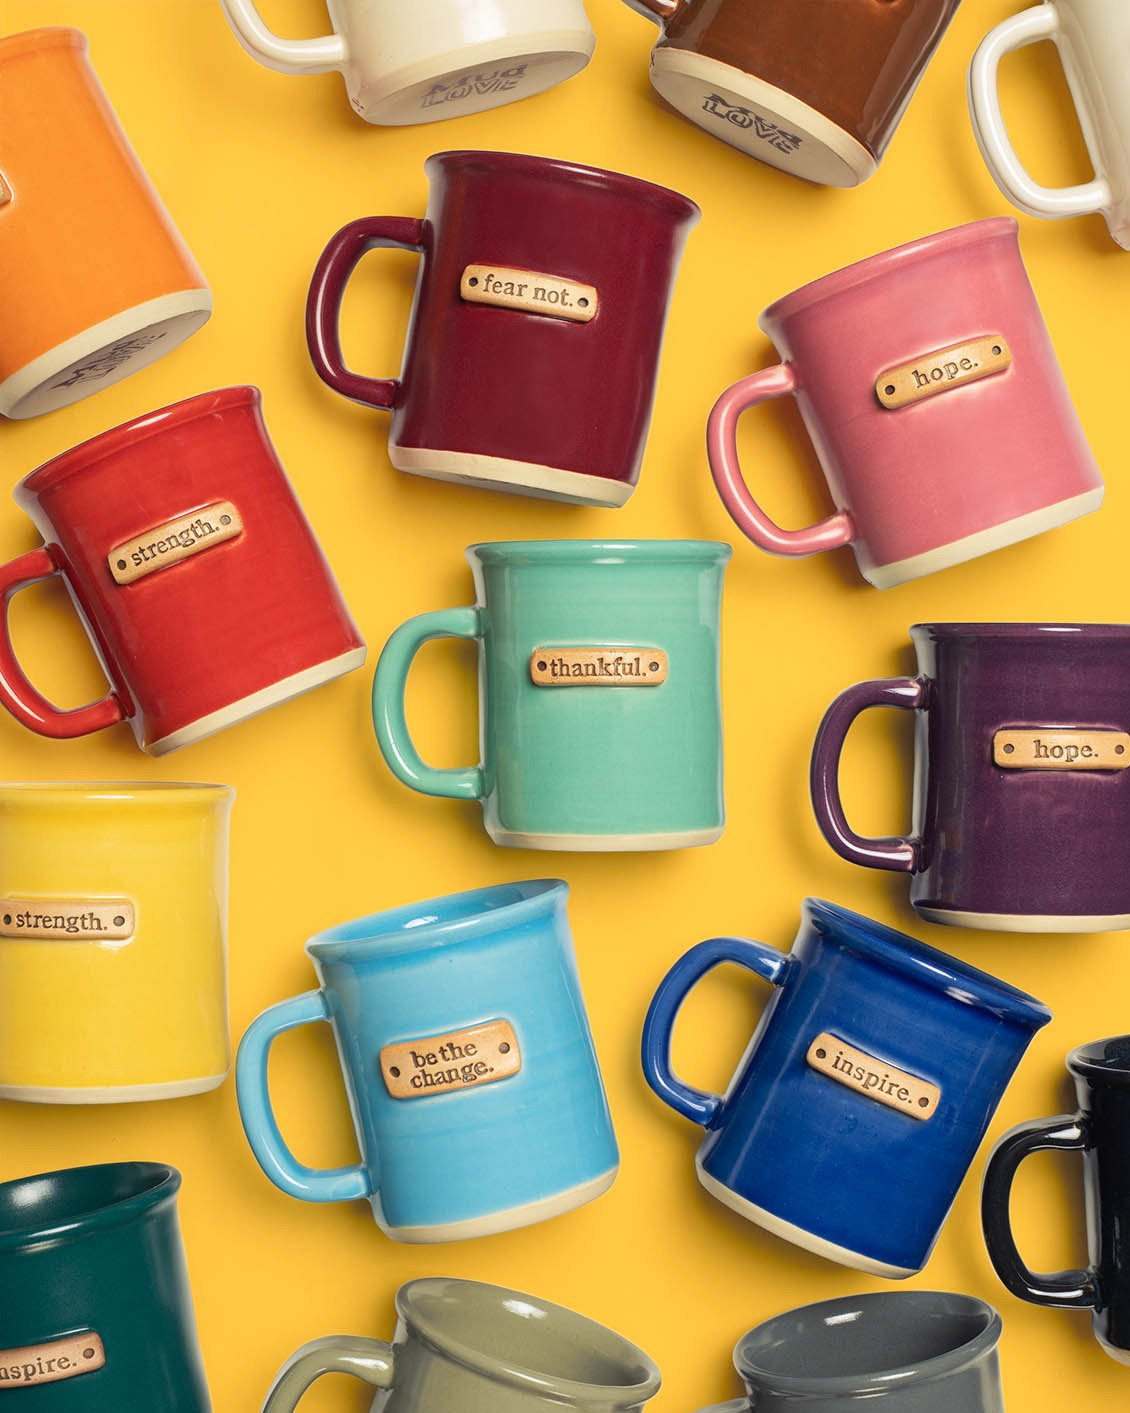 Our top 10 holiday gifts for women in 2020: Mudlove's inspiring one-word mugs | Small Business Holiday Gift Guide